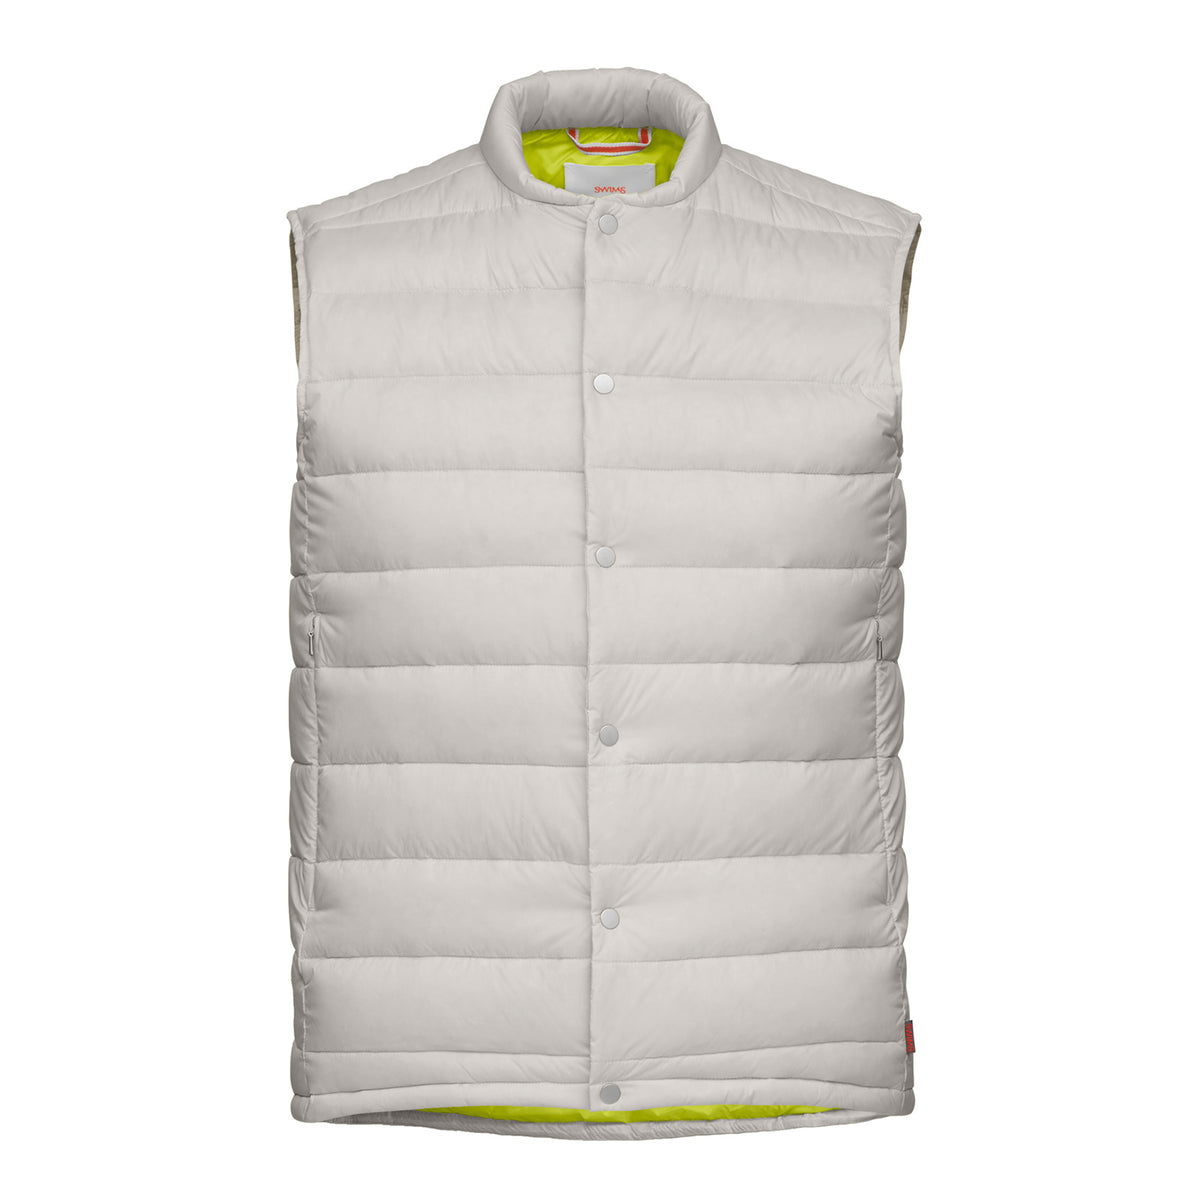 Motion Lite Vest - background::white,variant::Alloy